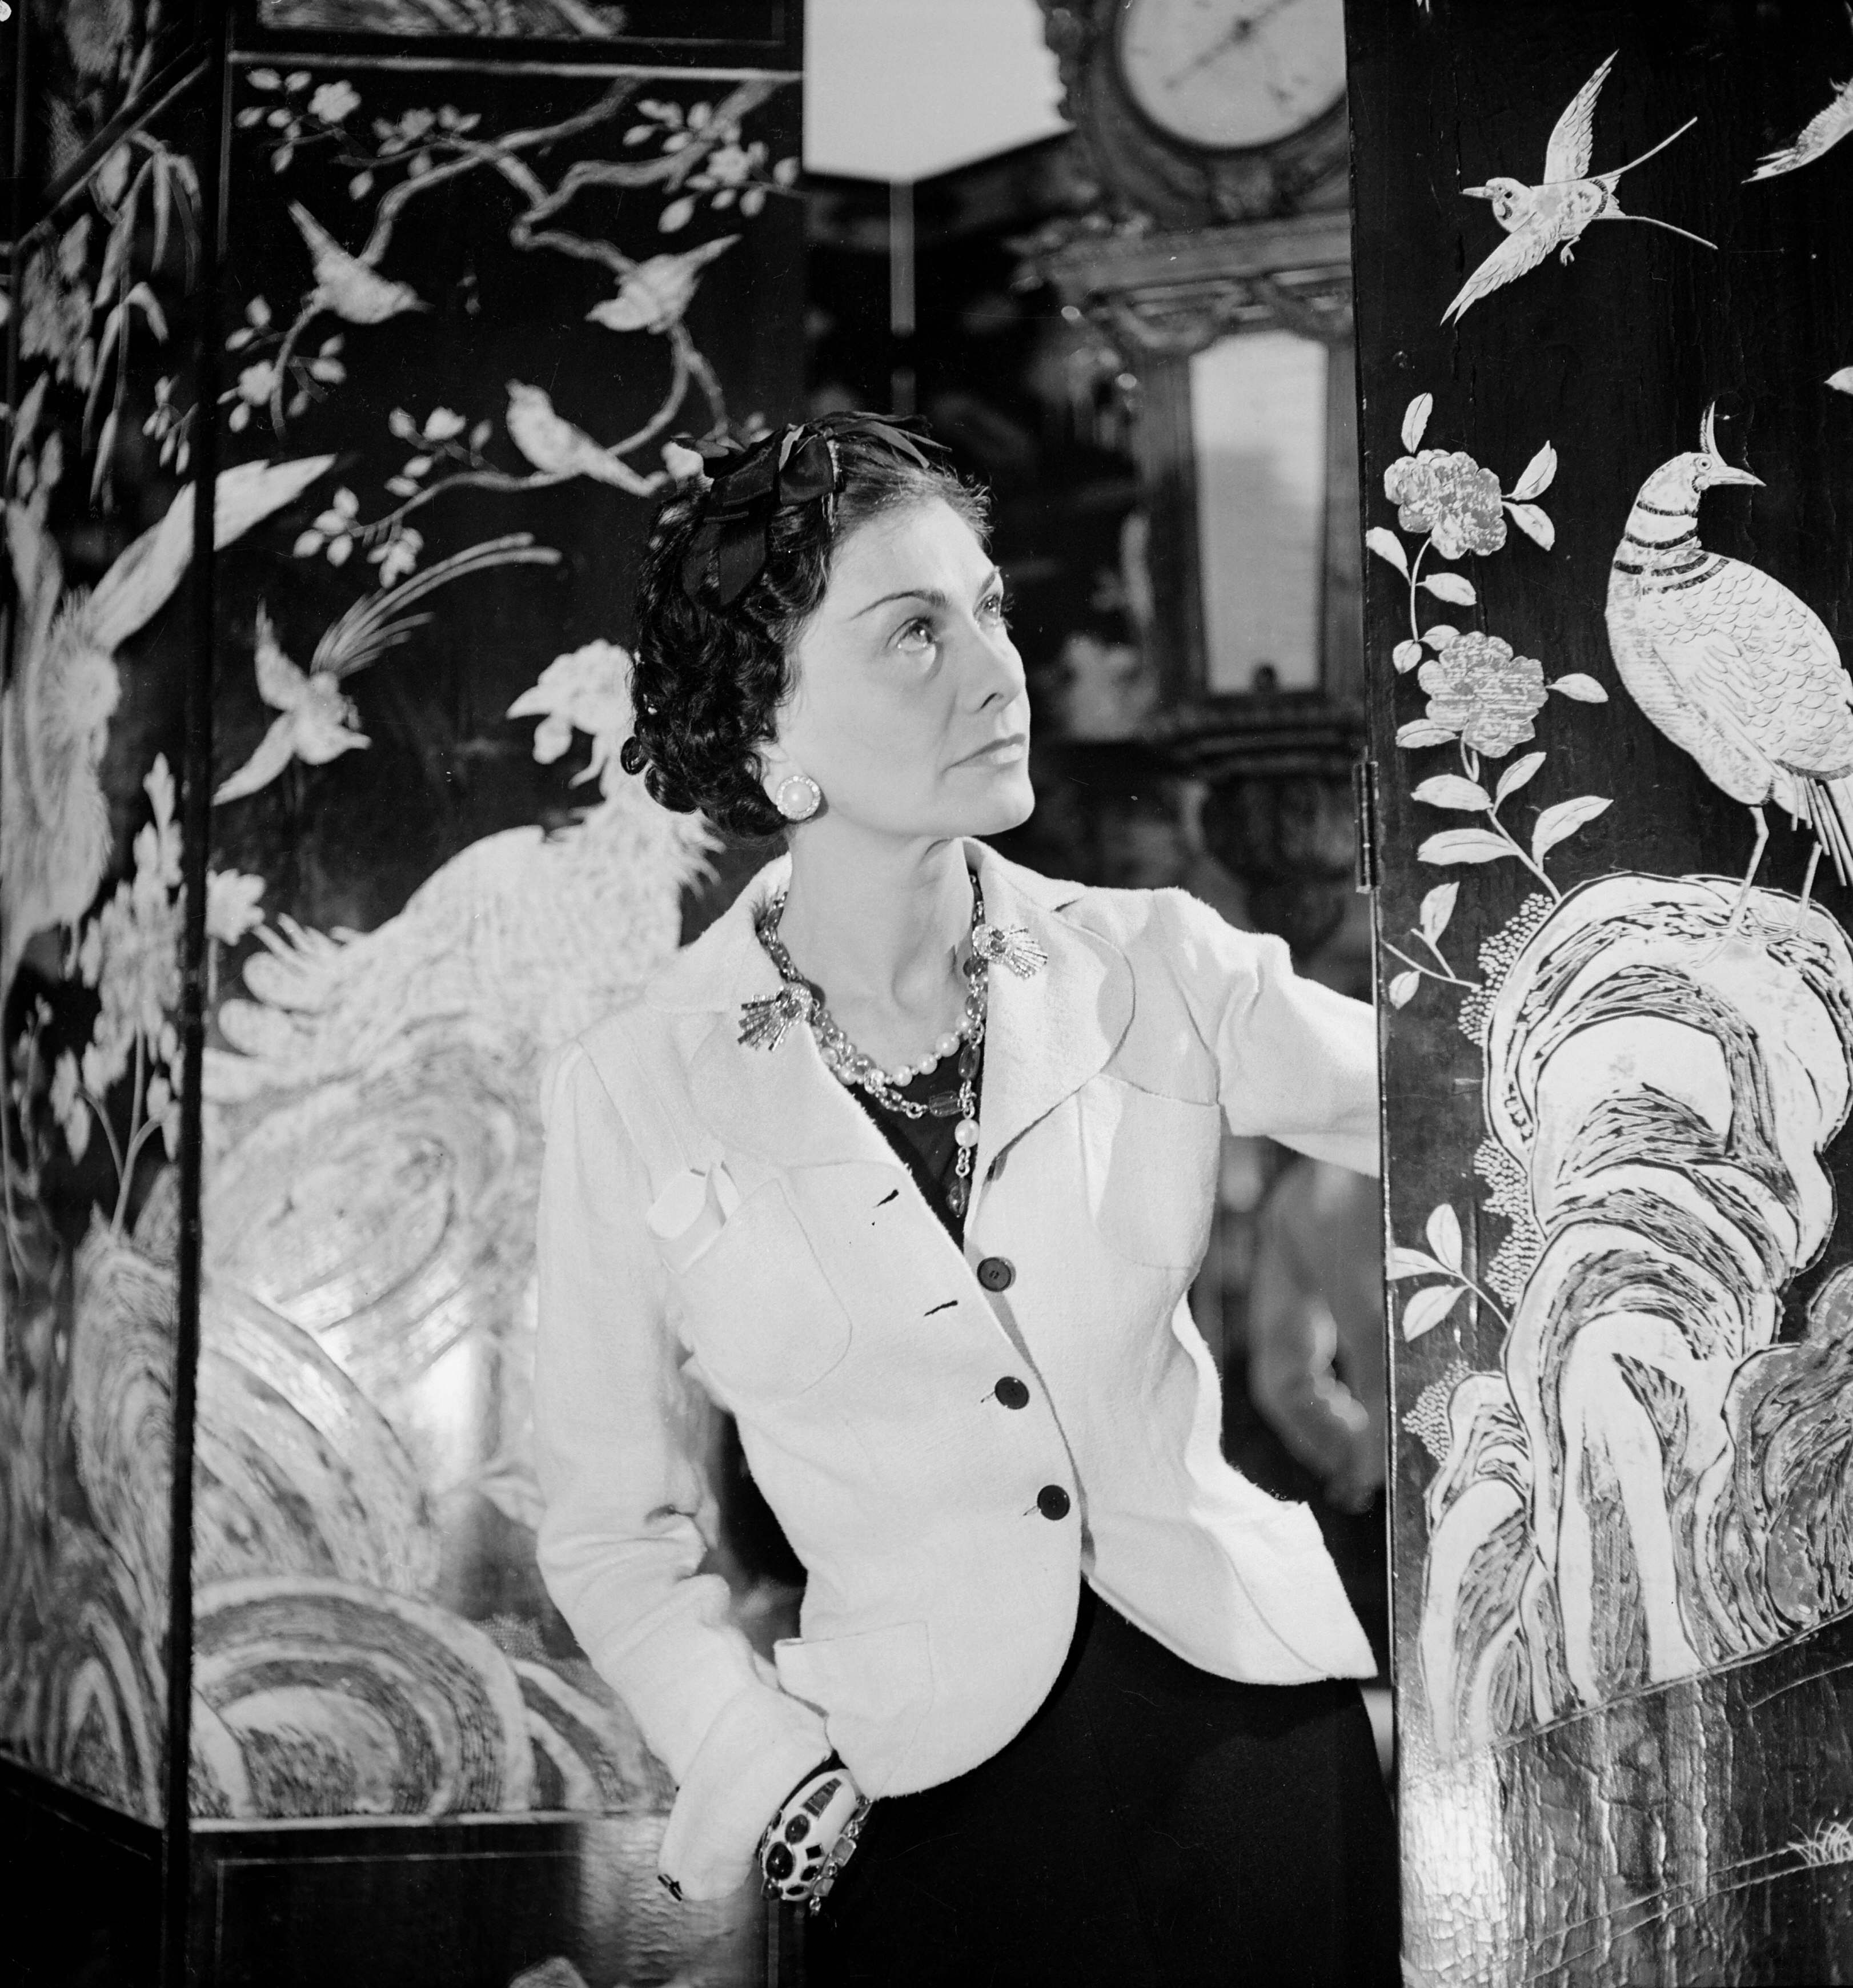 A Historical Look at Coco Chanel's Apartment